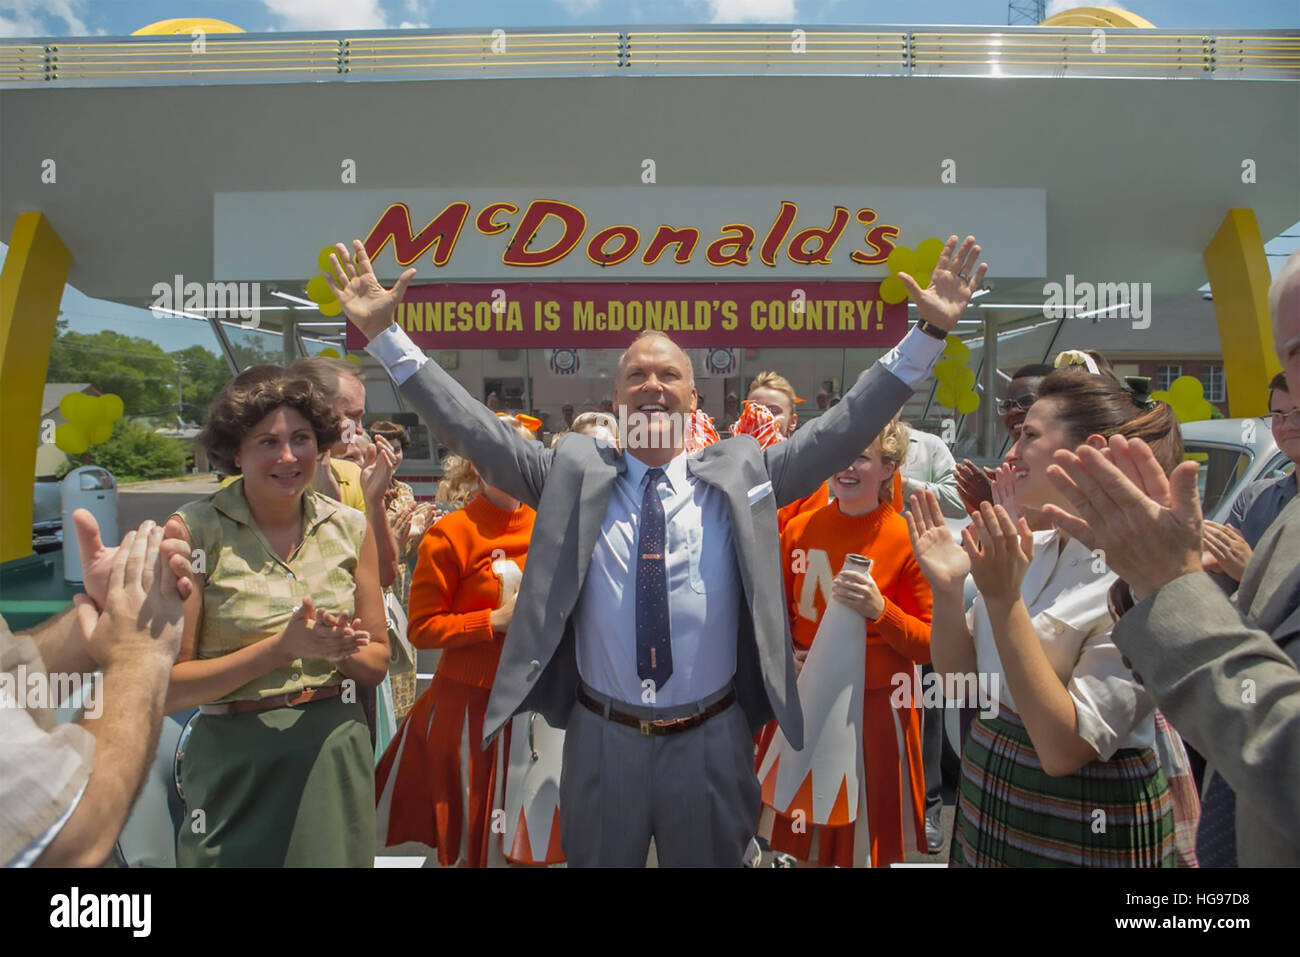 THE FOUNDER 2016 FilmNation Entertainment production with Michael Keaton as Ray Croc - Stock Image